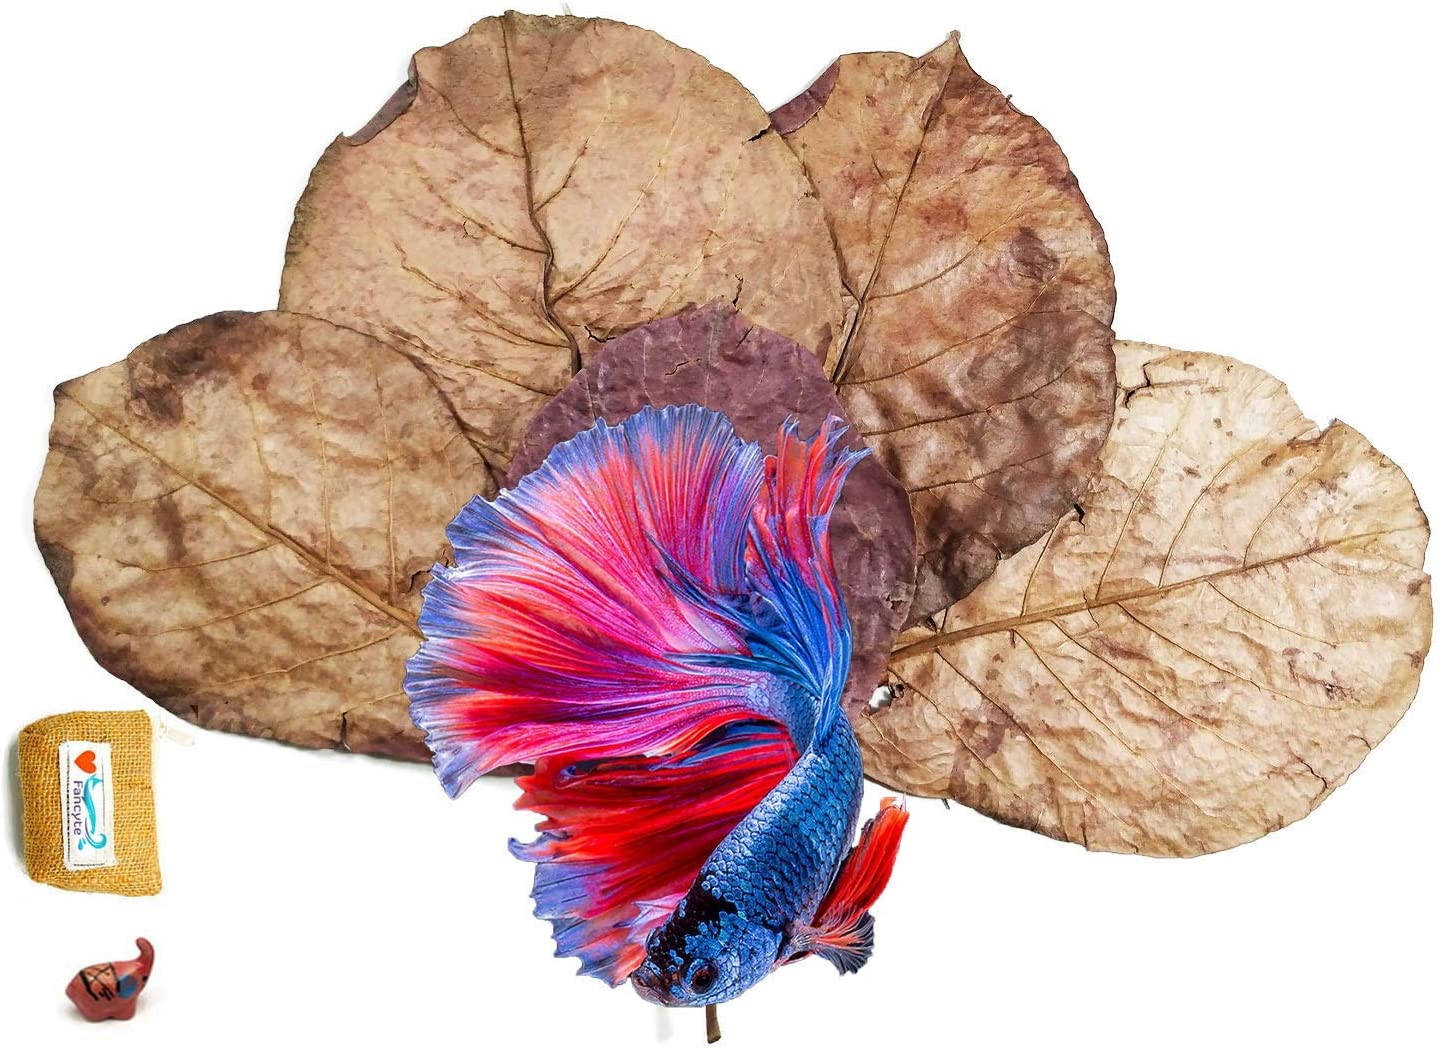 FANCYTE 18-25CM 50 Grams(25PIECES) Indian Almond Leaves Fish Tank for Shrimp Crayfish, Betta Fish,Improve Comfort by Simulating House for Fish Healthy